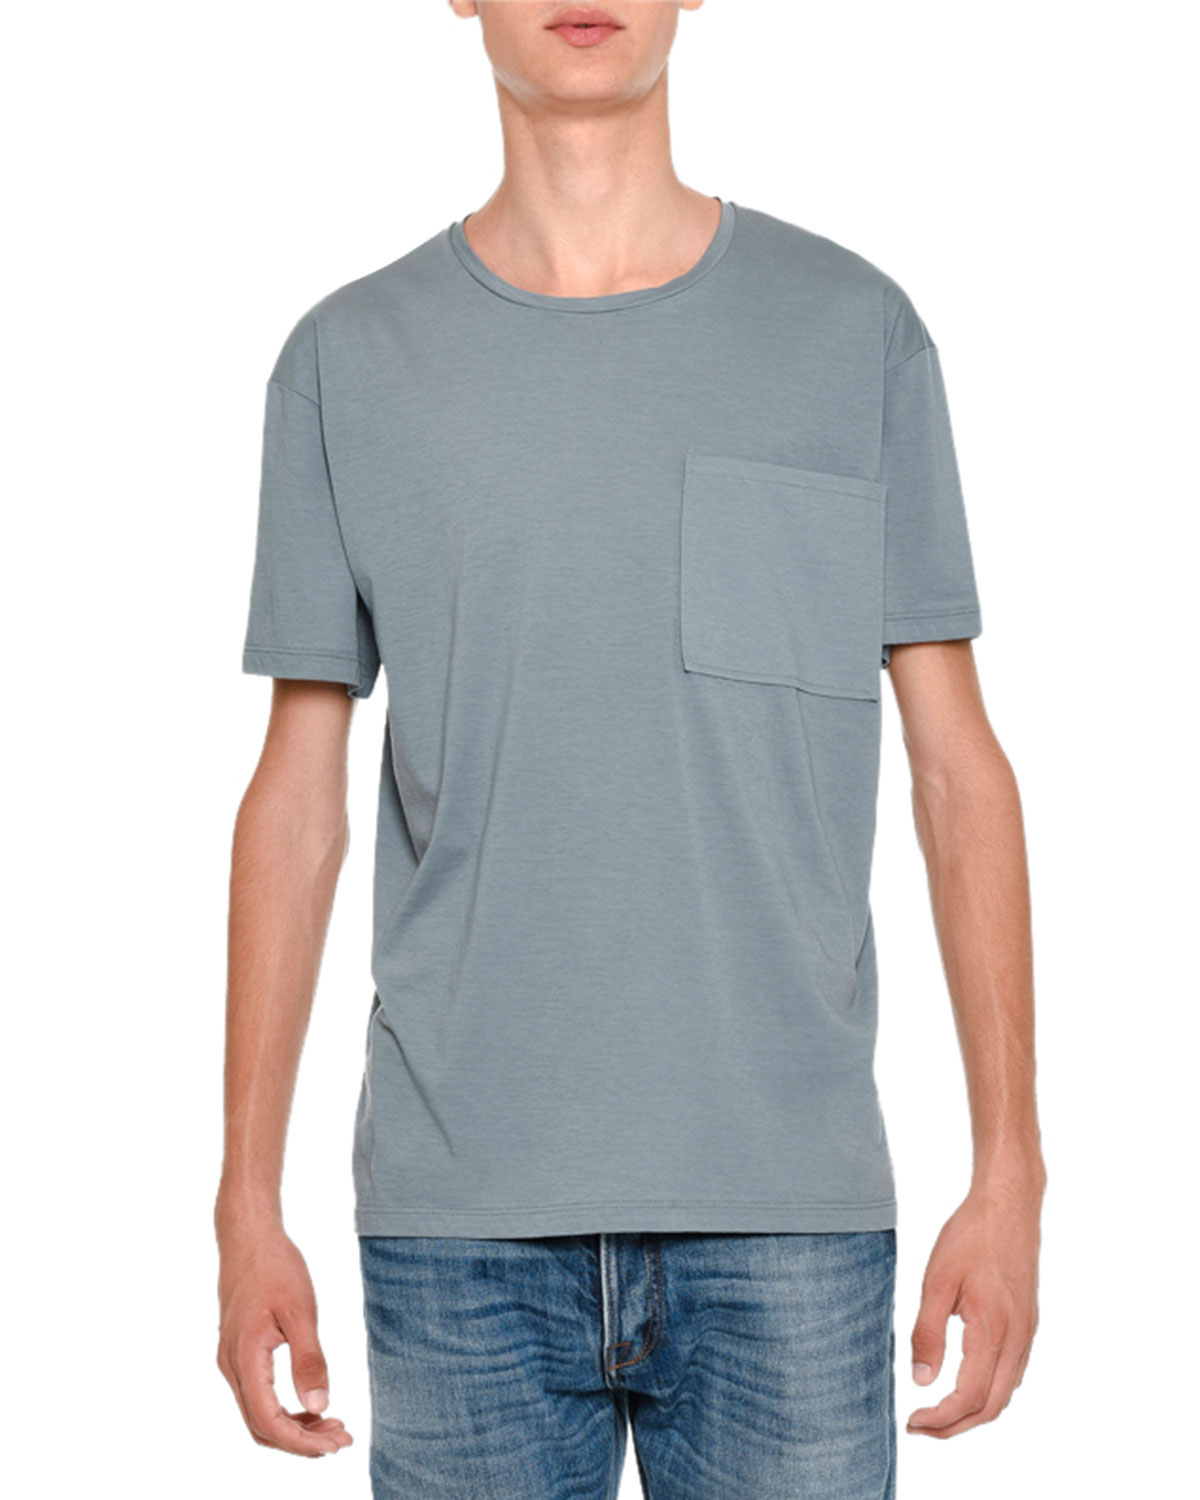 Rockstud Basic Crewneck Short-Sleeve T-Shirt, Light Blue